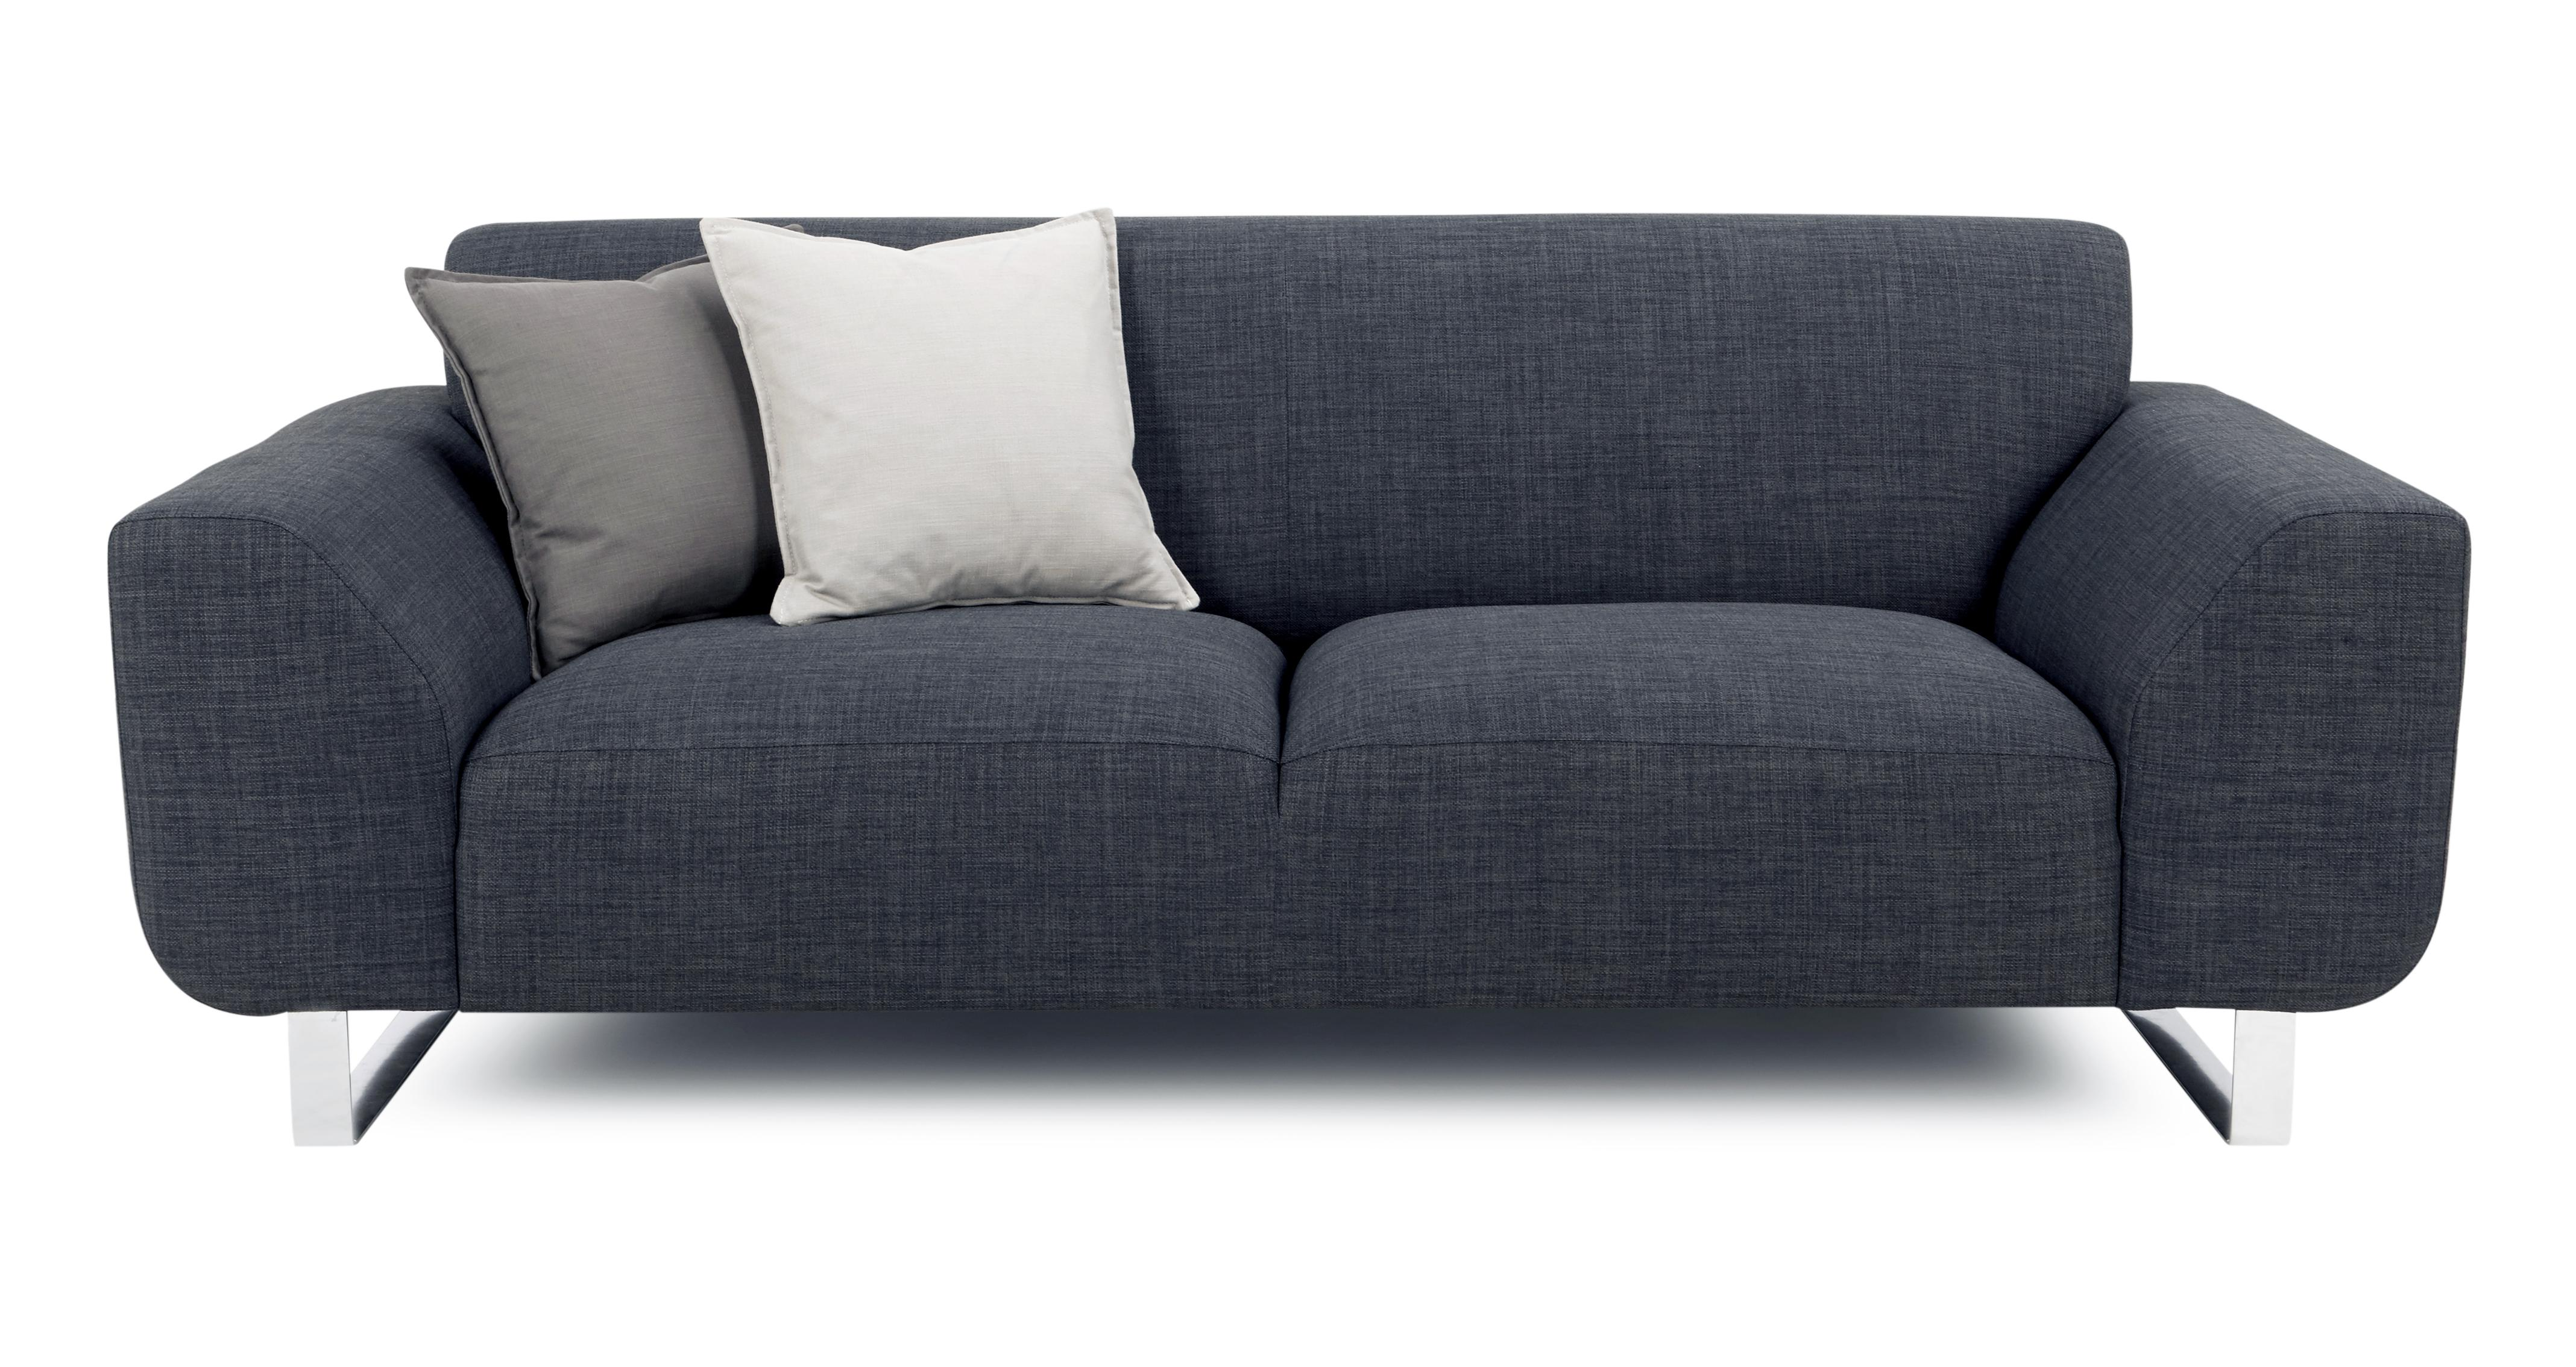 Hardy 2 seater sofa revive dfs for Sofa 0 interest free credit